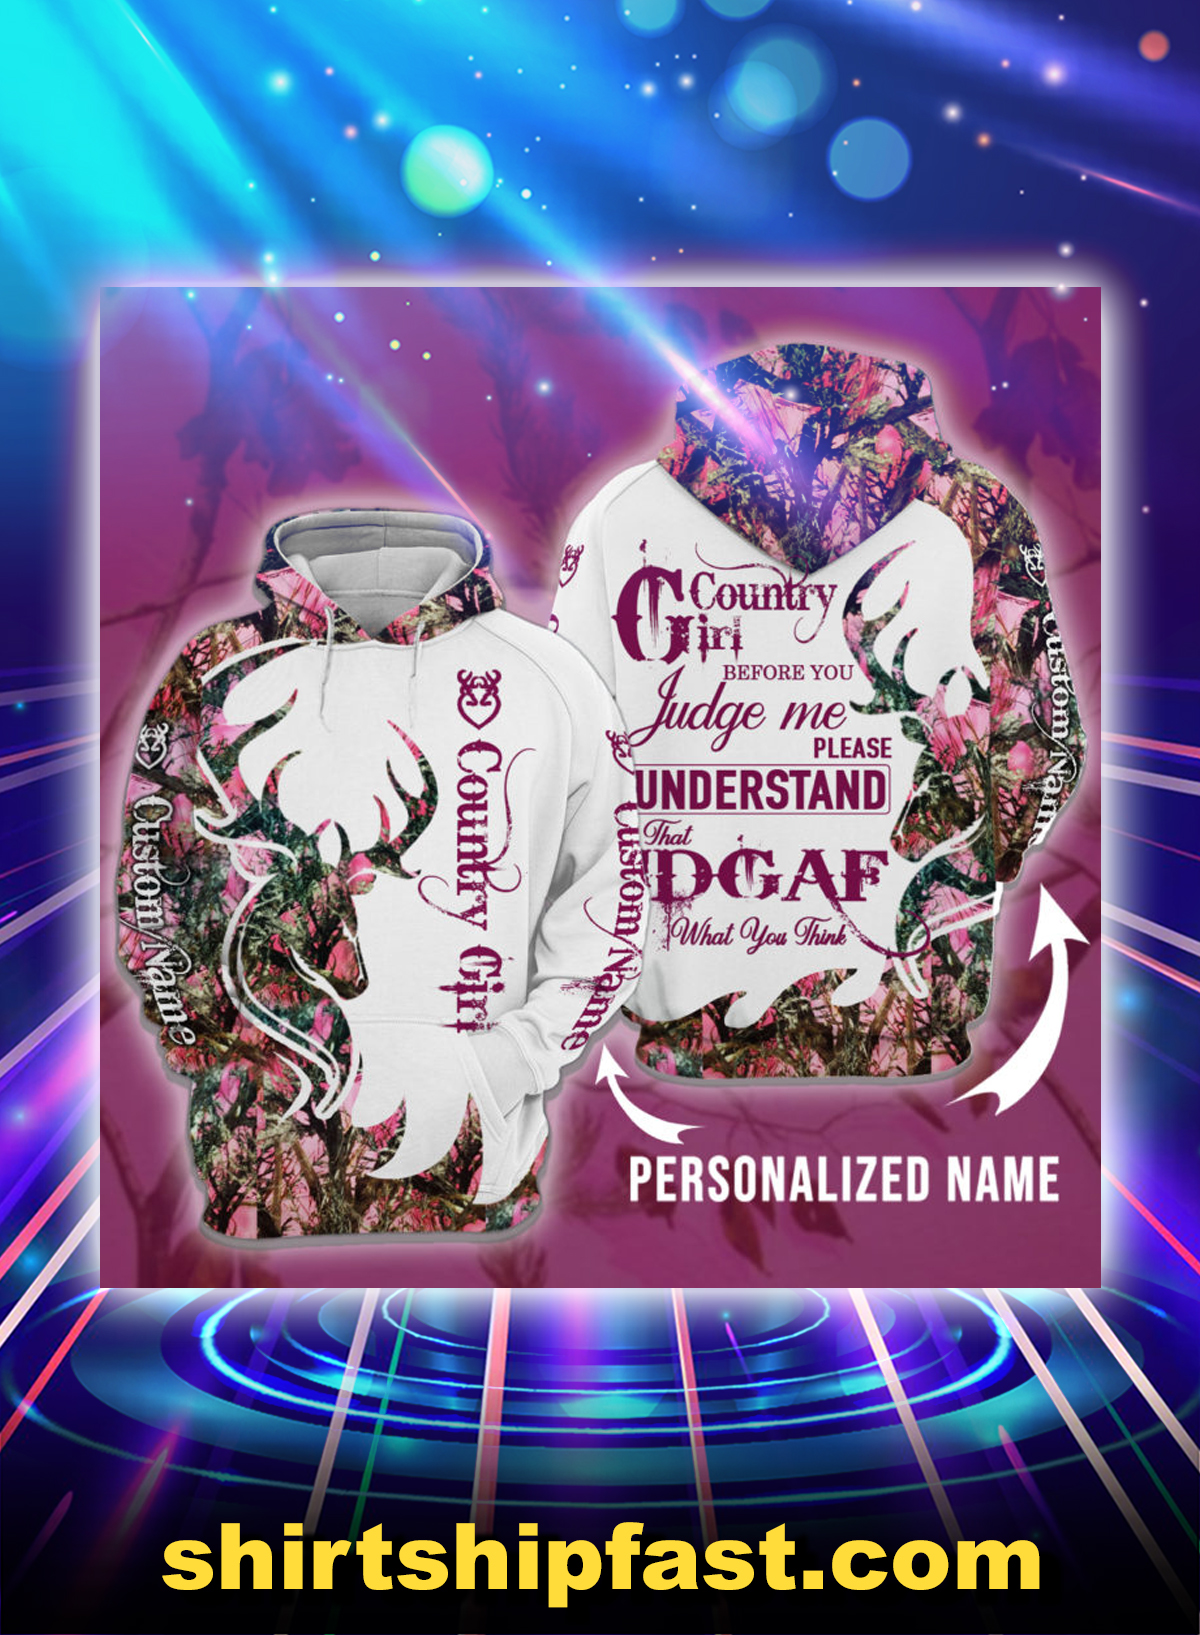 Deer hunting country girl before you judge me please understand personalized custom name 3d hoodie - Picture 1